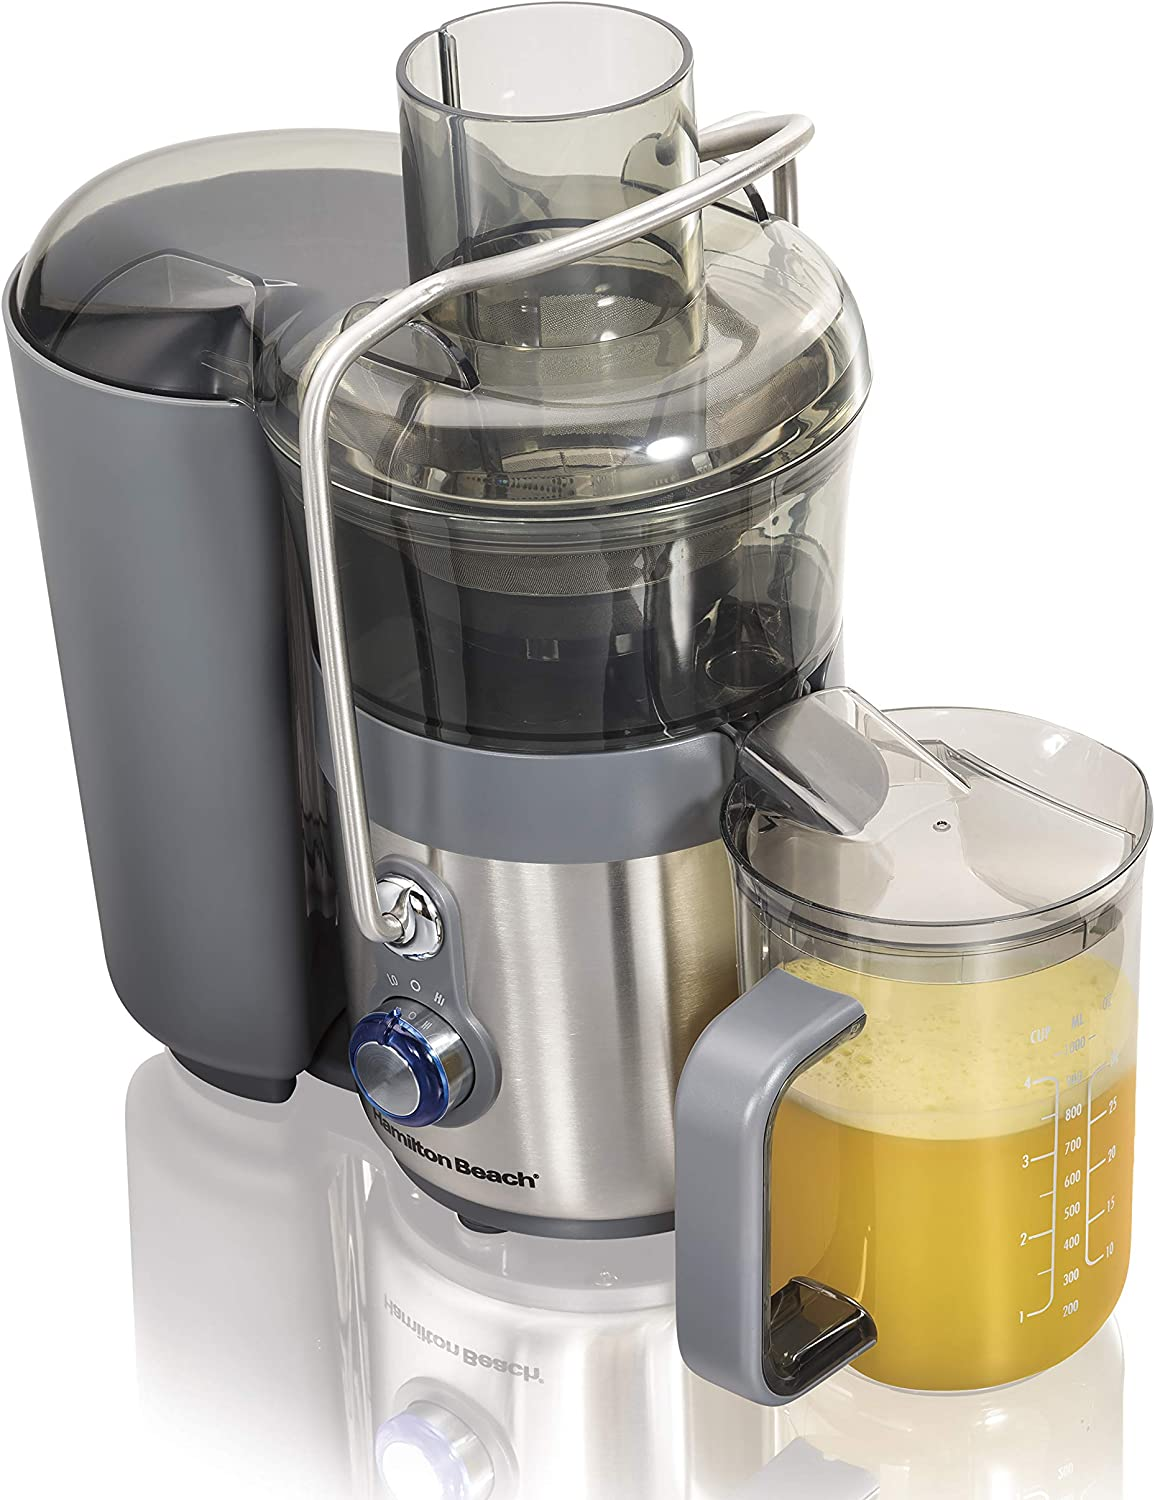 Best Small Juicers 2021 Review - TOP Picks & Buying Guide 5